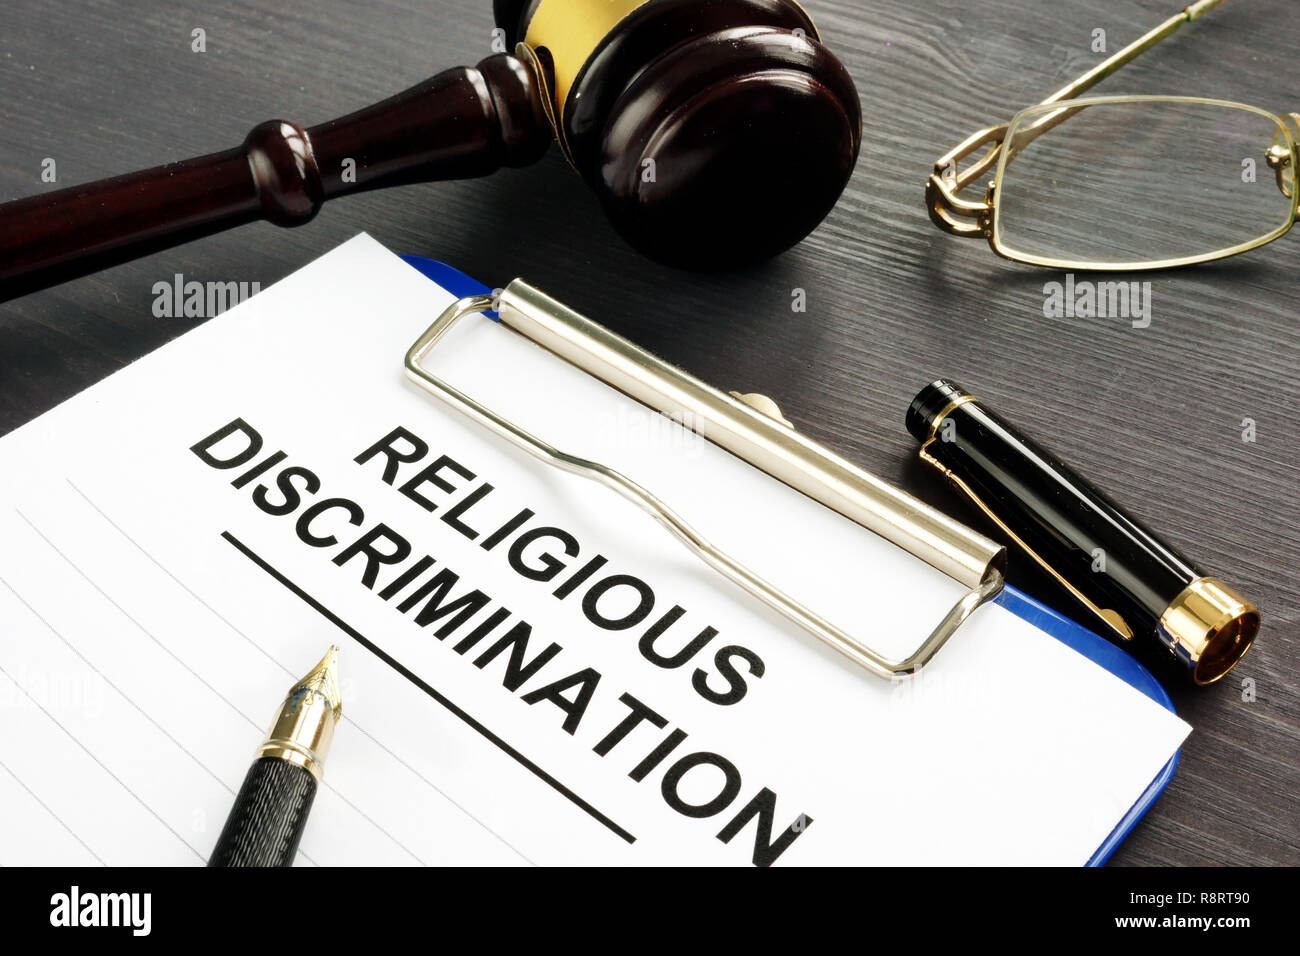 Religious Discrimination claim and pen on a table. - Stock Image